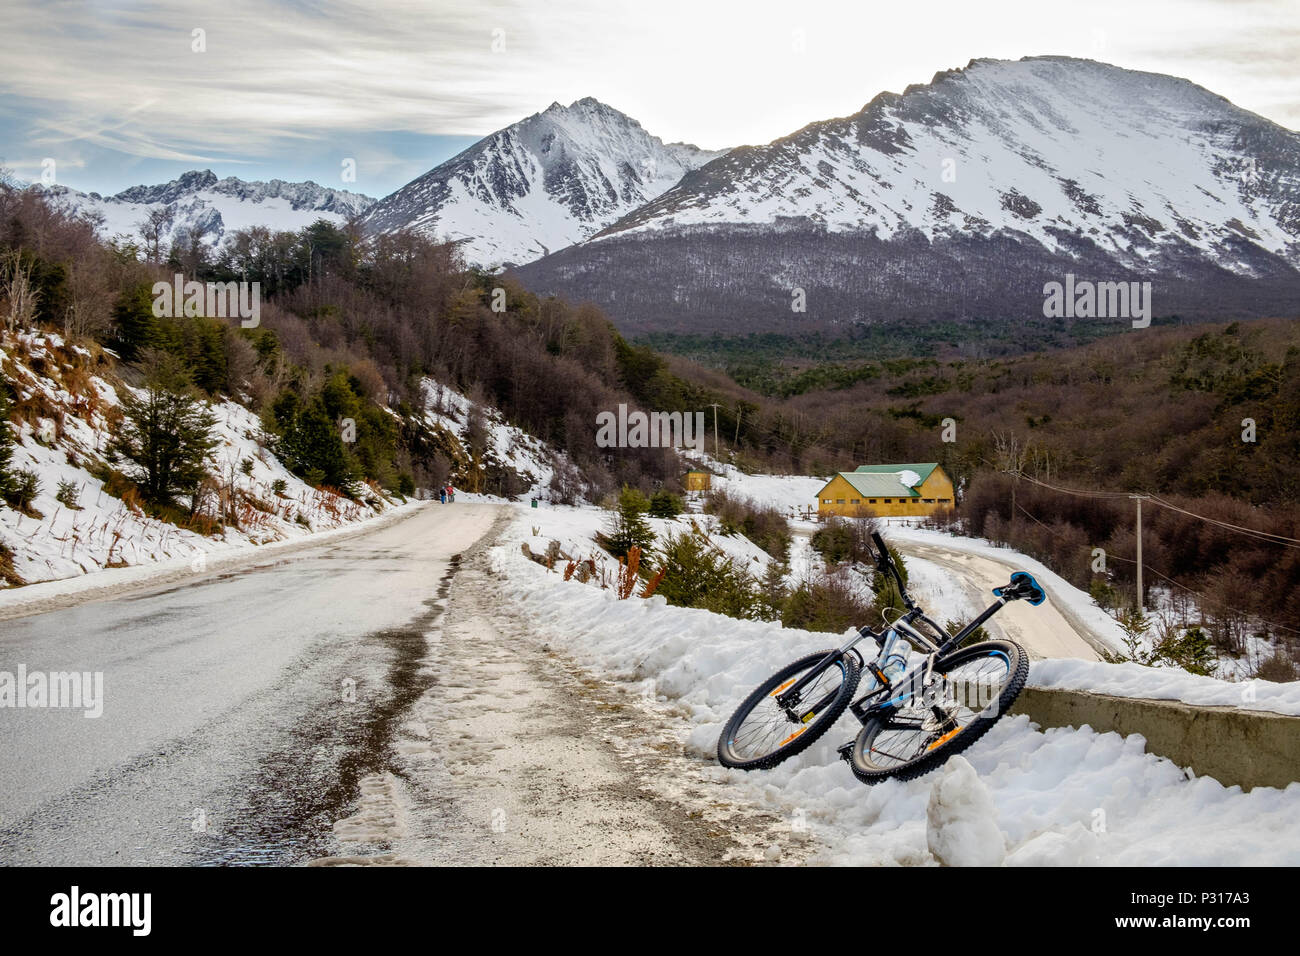 A mountainbike is resting next to the road in between the Martial Glacier and the city of Ushuaia. Snow has made the descent more dangerous. Stock Photo